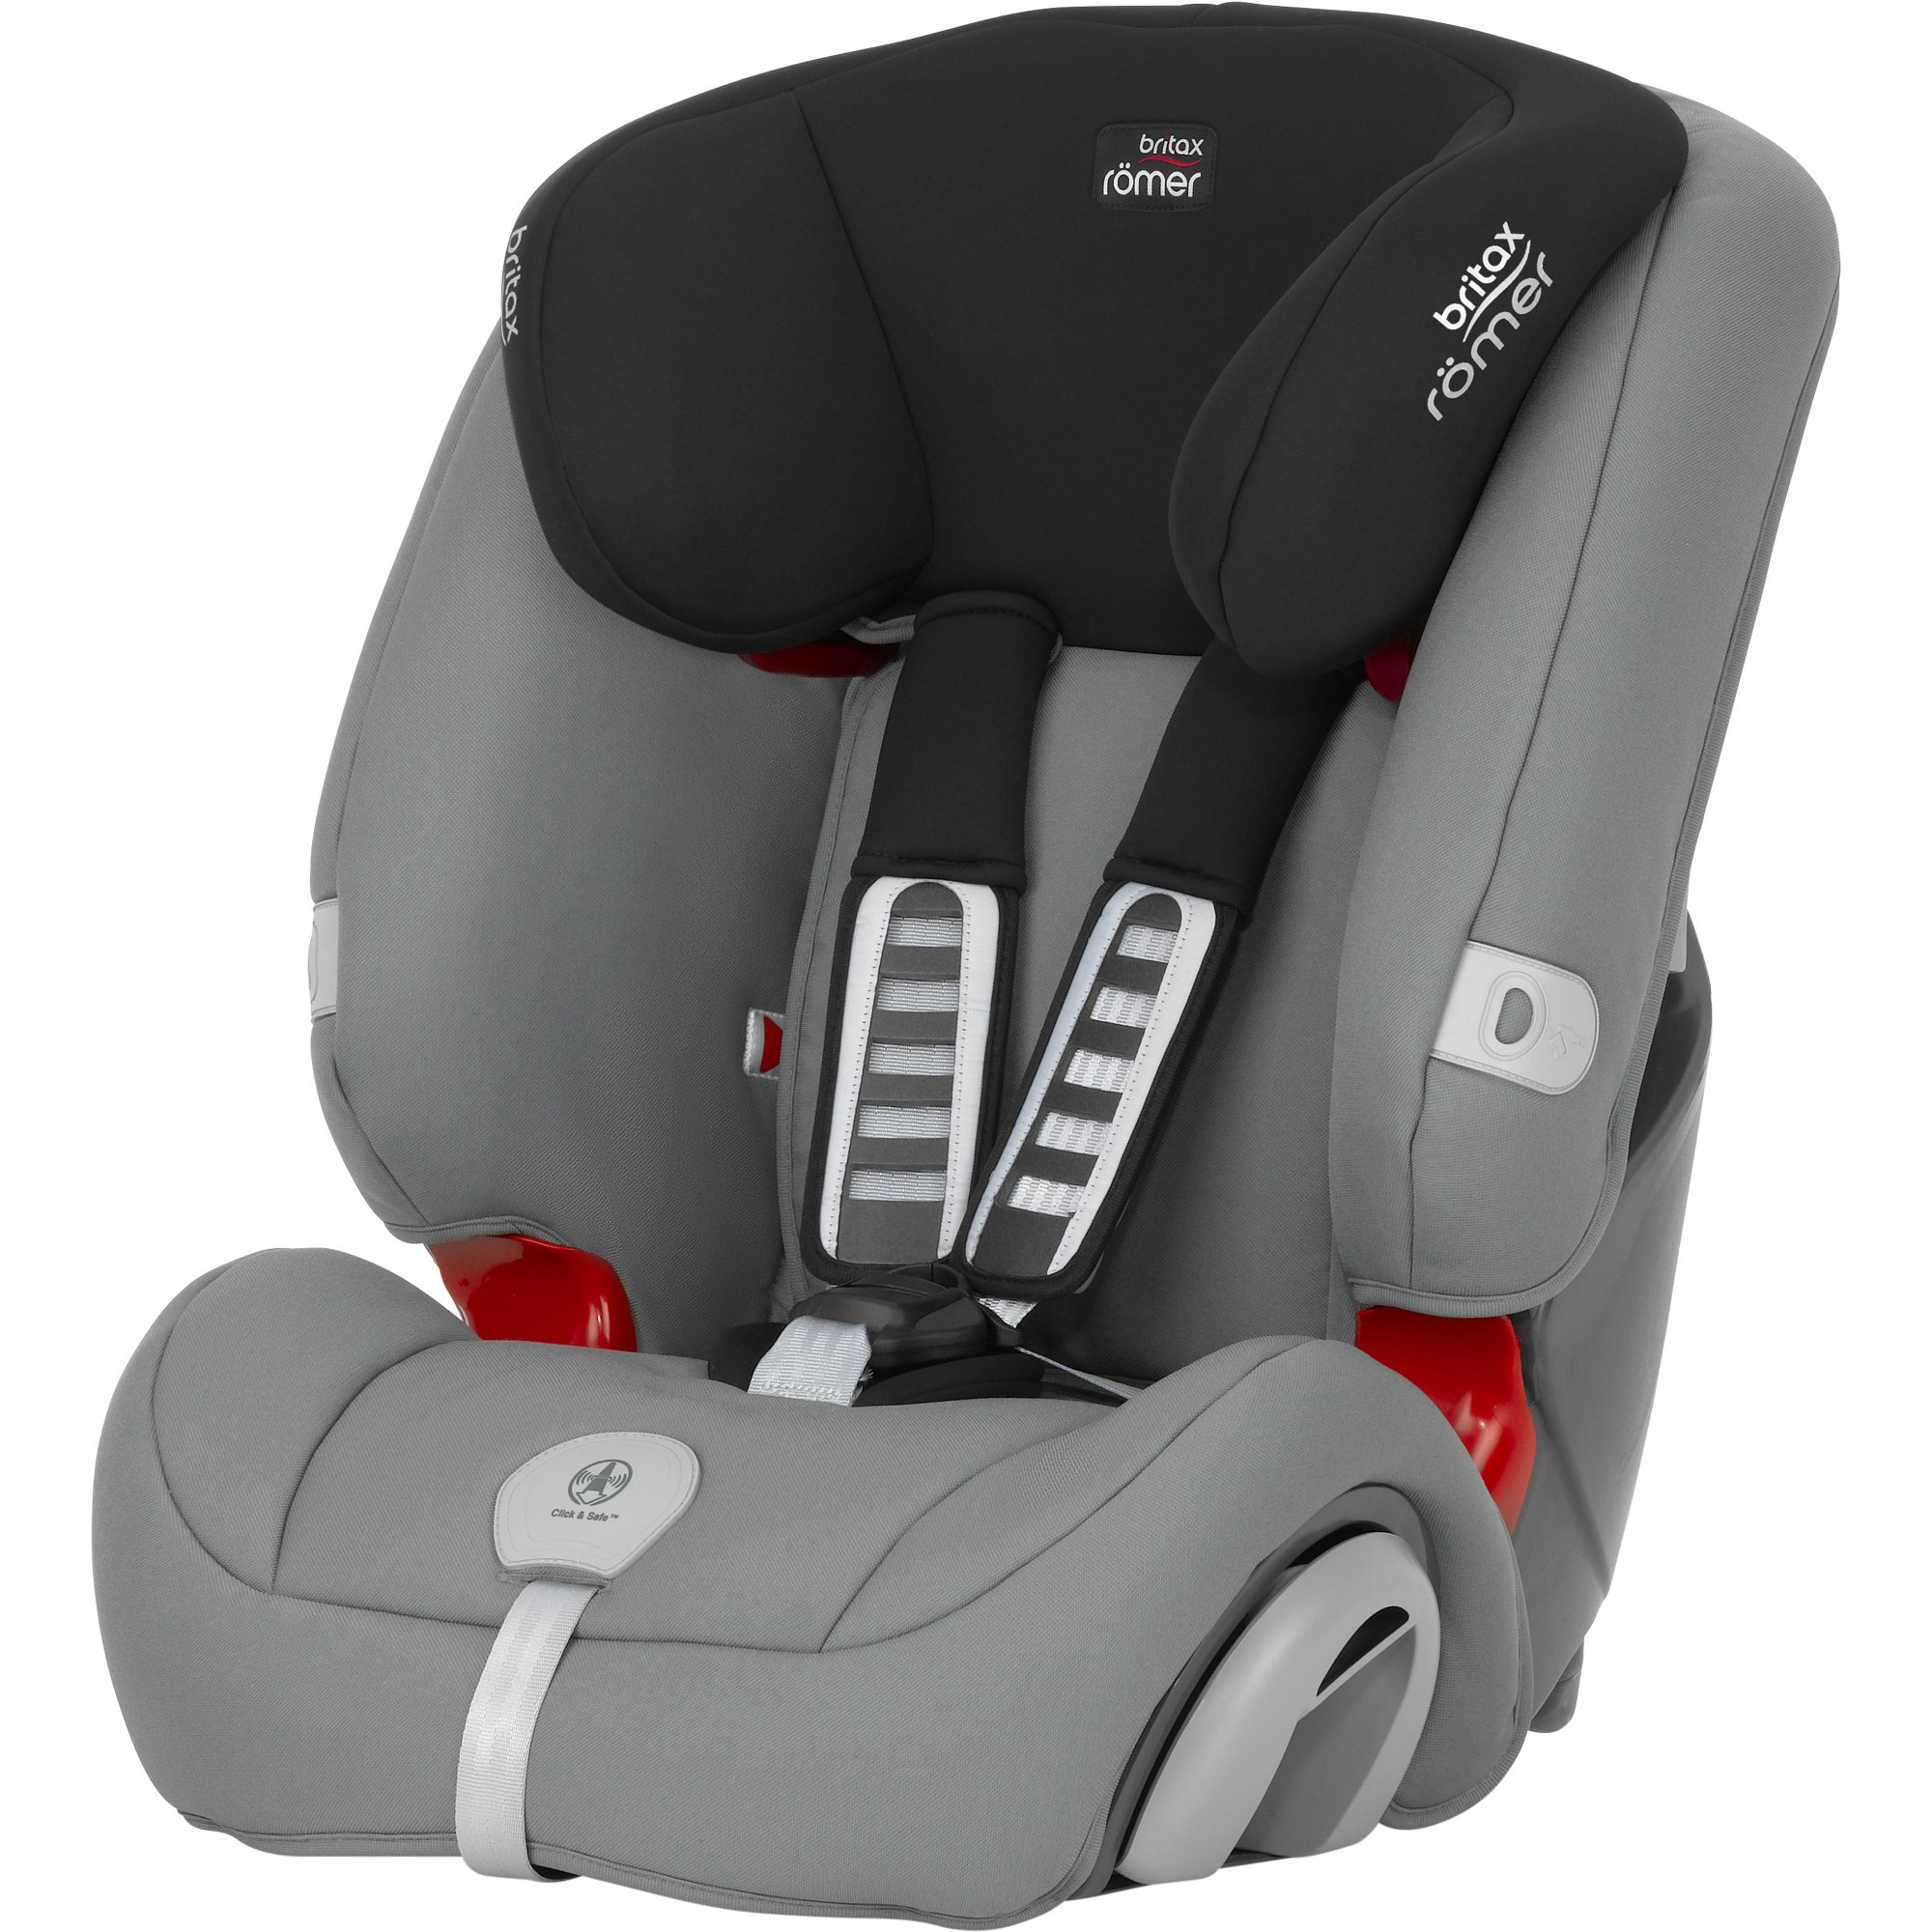 scaun auto copii britax-romer, 1 2 3 plus steel grey